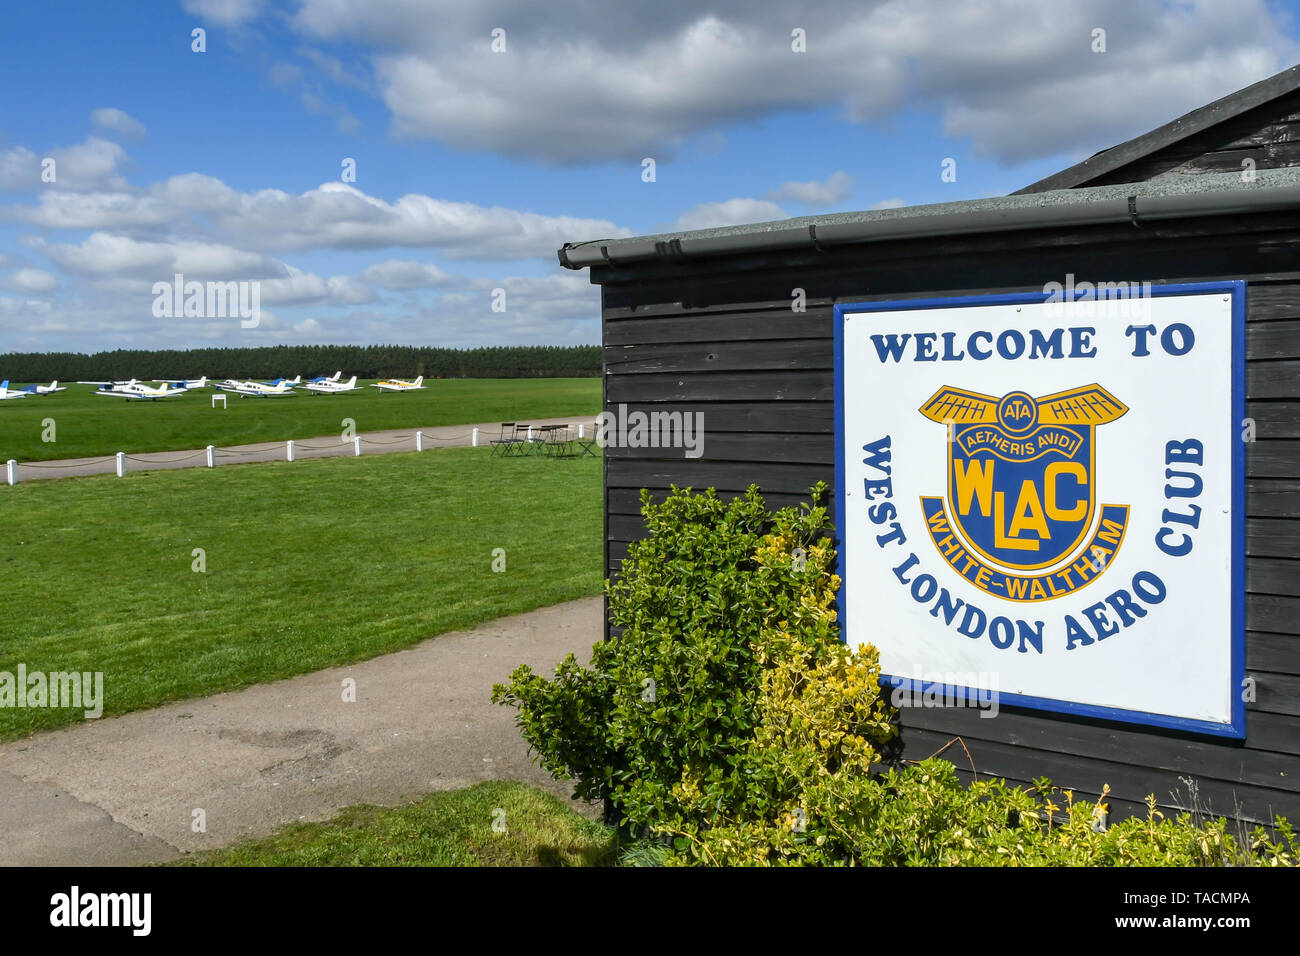 WHITE WALTHAM, ENGLAND - MARCH 2019: West London Aero Club sign on the side of a building at White Walhtam airfield. - Stock Image